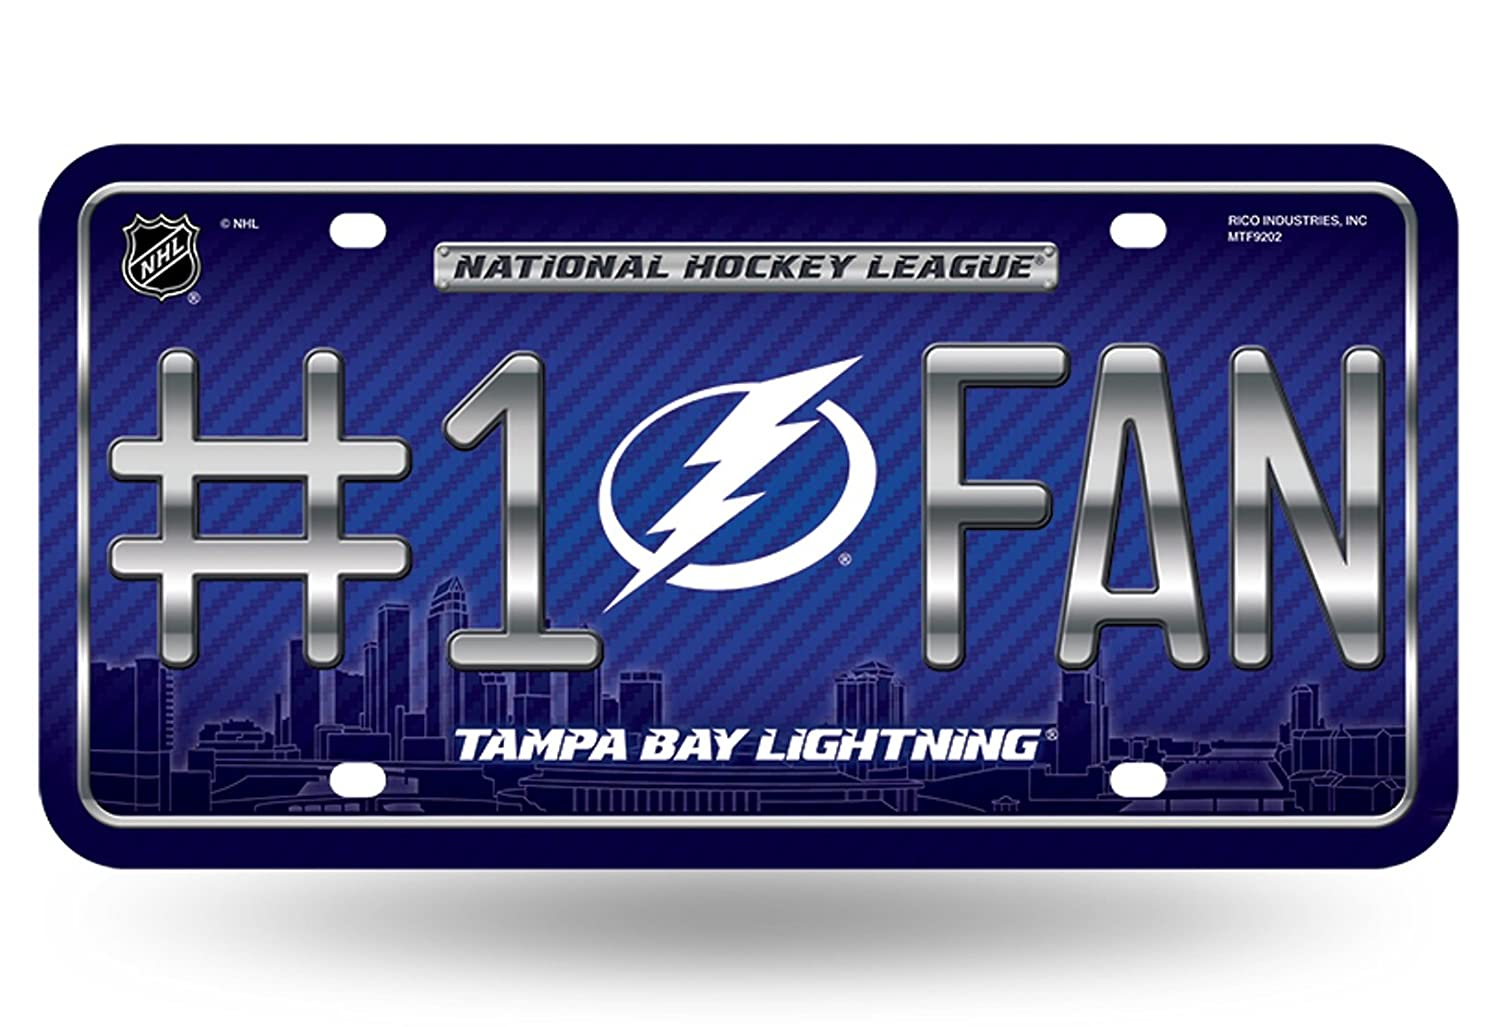 Rico Industries Tampa Bay Lightning New City Design #1 Fan 9202 Metal Tag License Plate Hockey